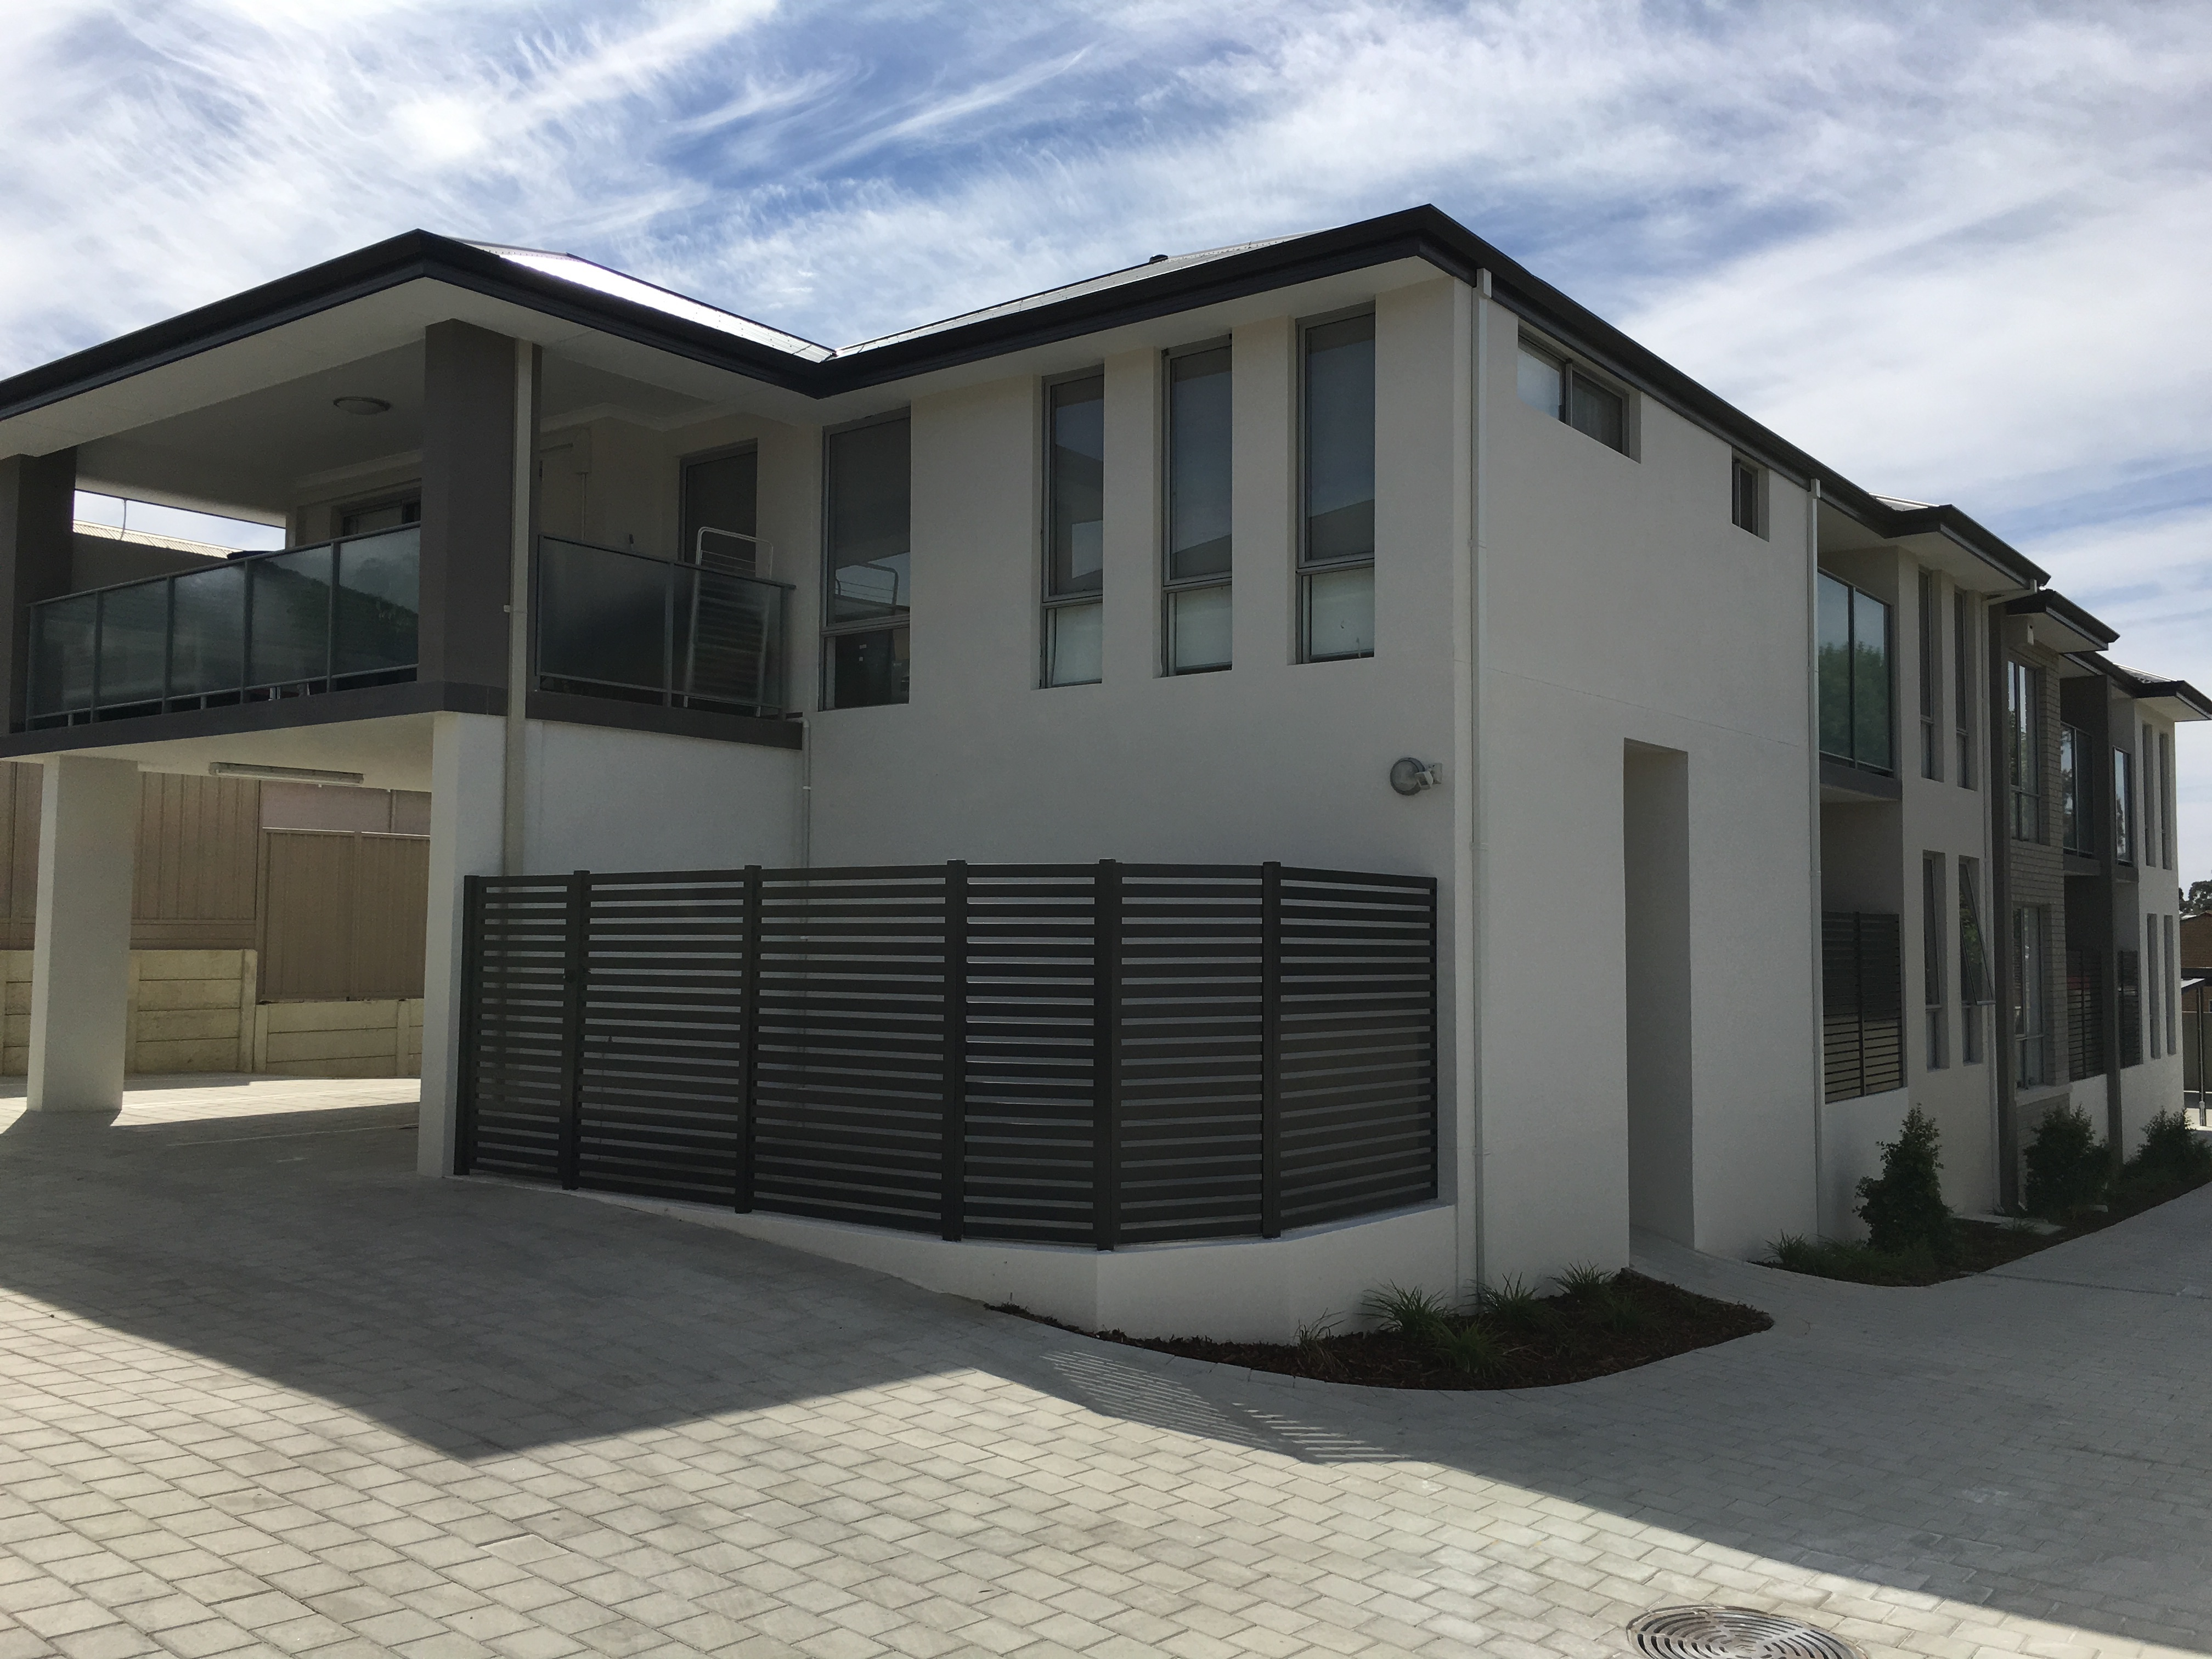 Exterior shot of large residential unit development painted in light grey with dark grey accents